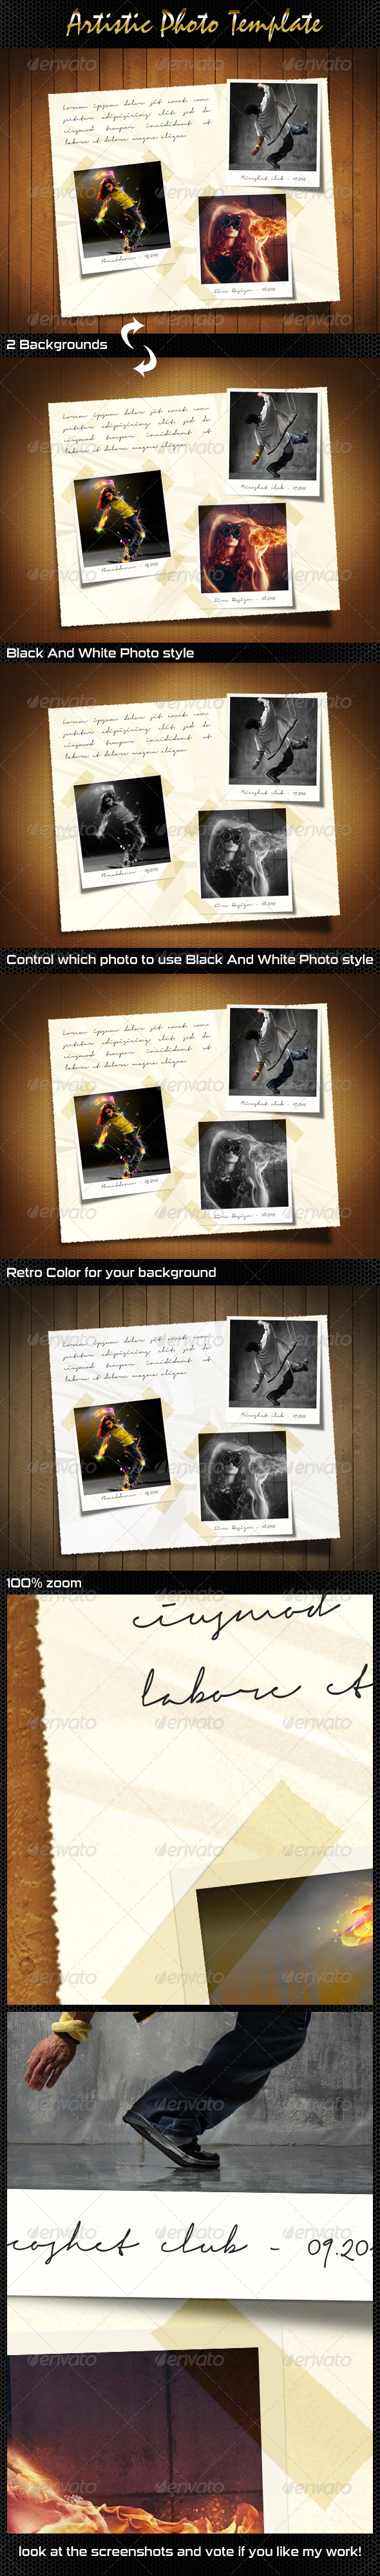 GraphicRiver Artistic Photo Template 5524911